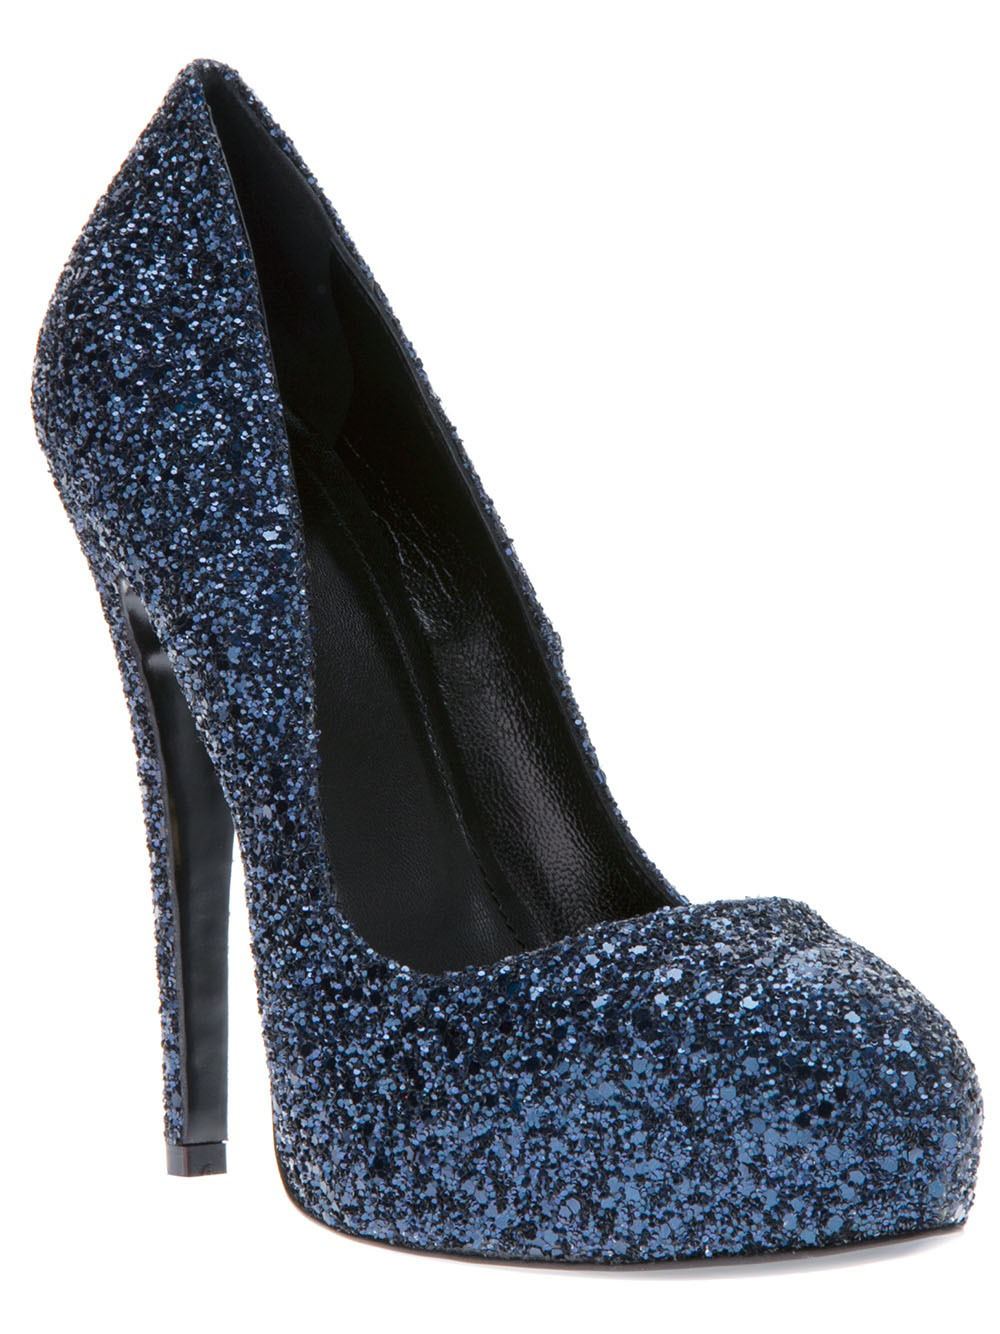 Navy Glitter Shoes Promotion-Shop for Promotional Navy Glitter